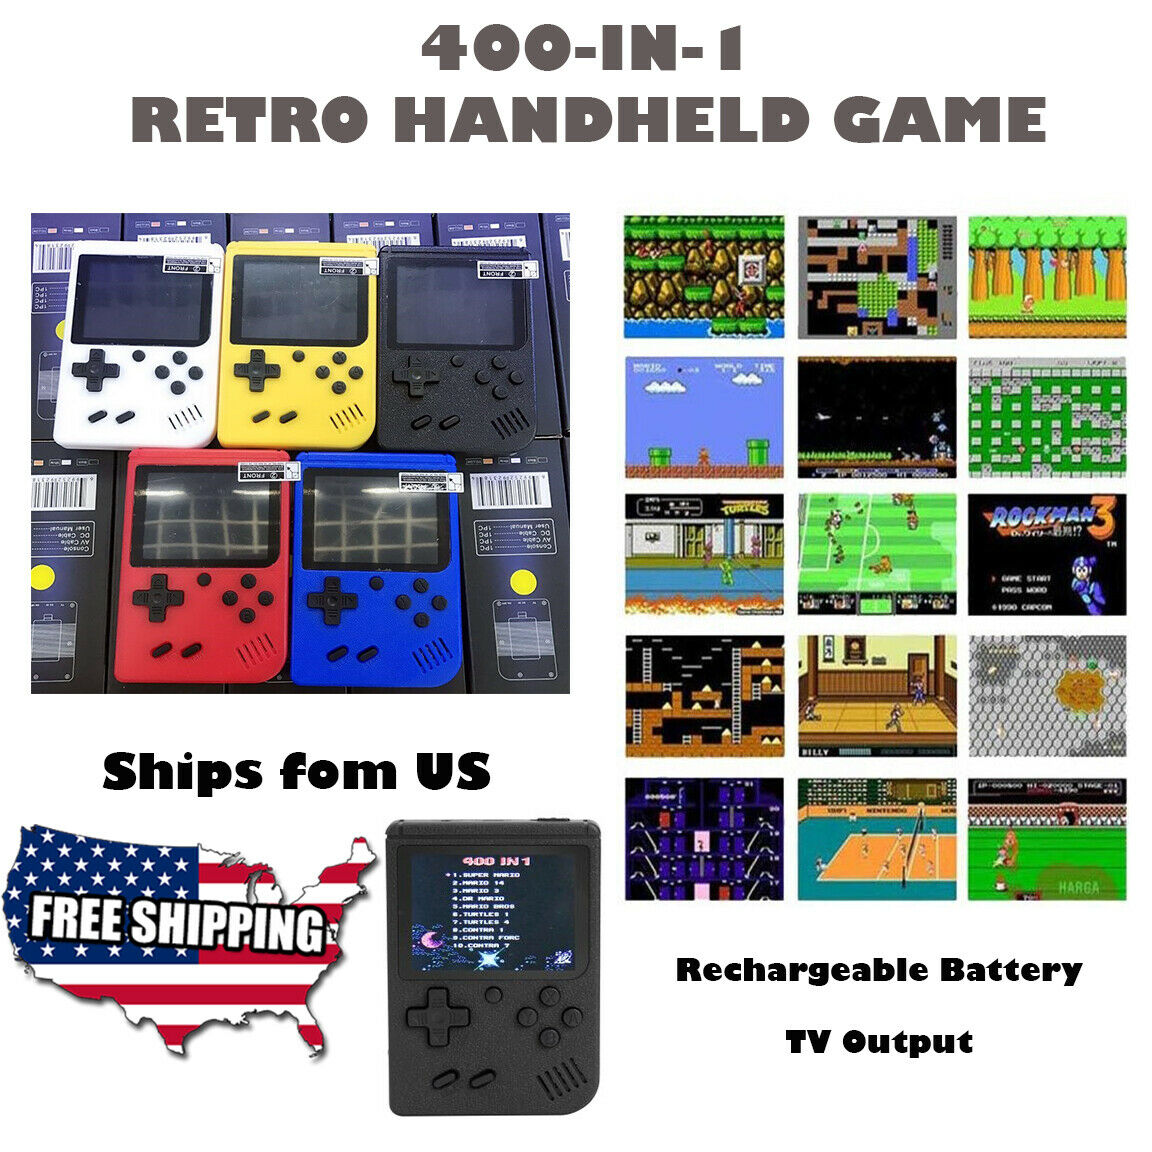 400 in 1 Retro Handheld Gameboy Style Console Classic US Seller